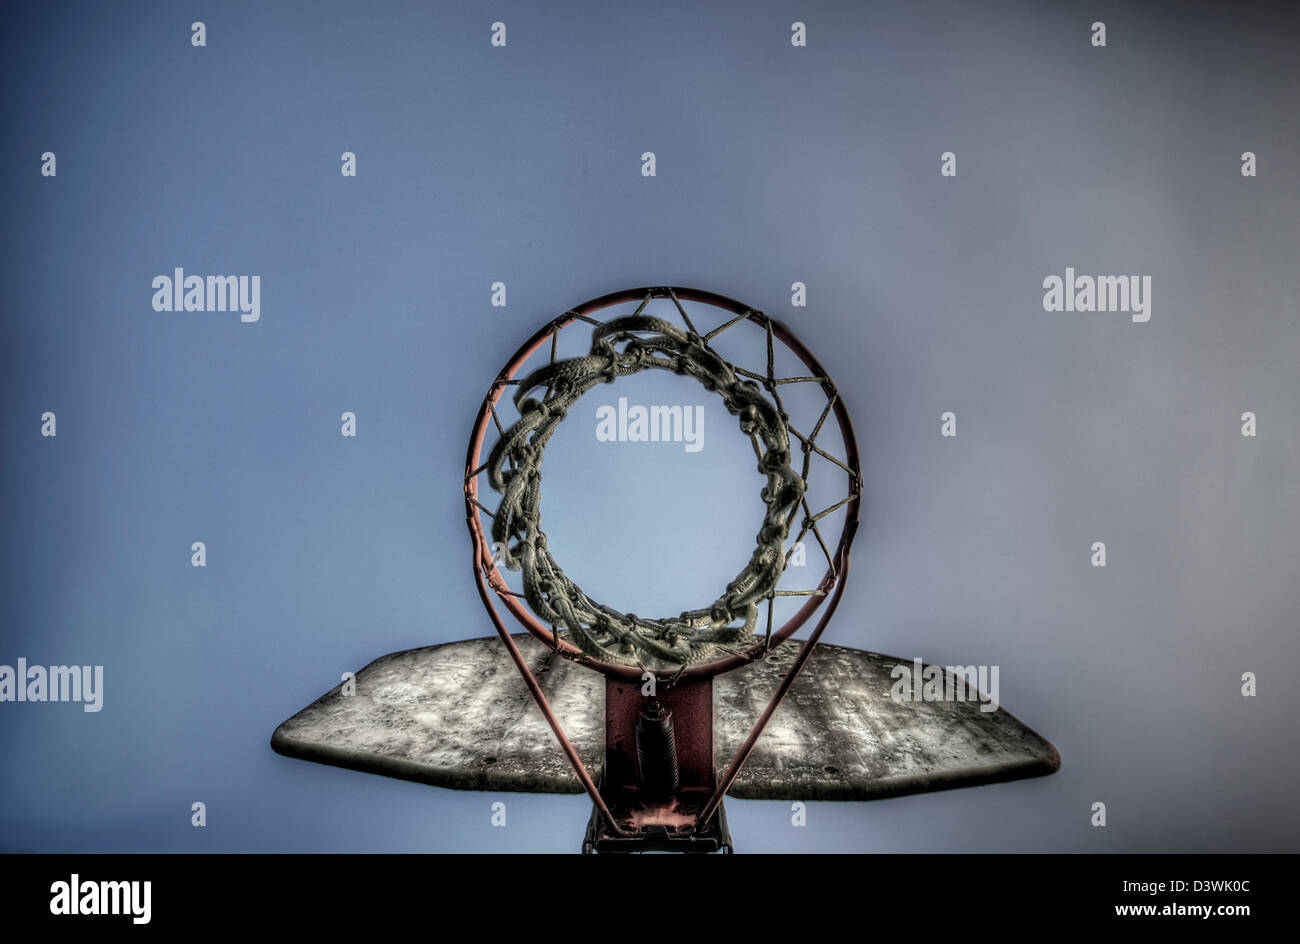 Looking up through a weathered outdoor basketball hoop - Stock Image